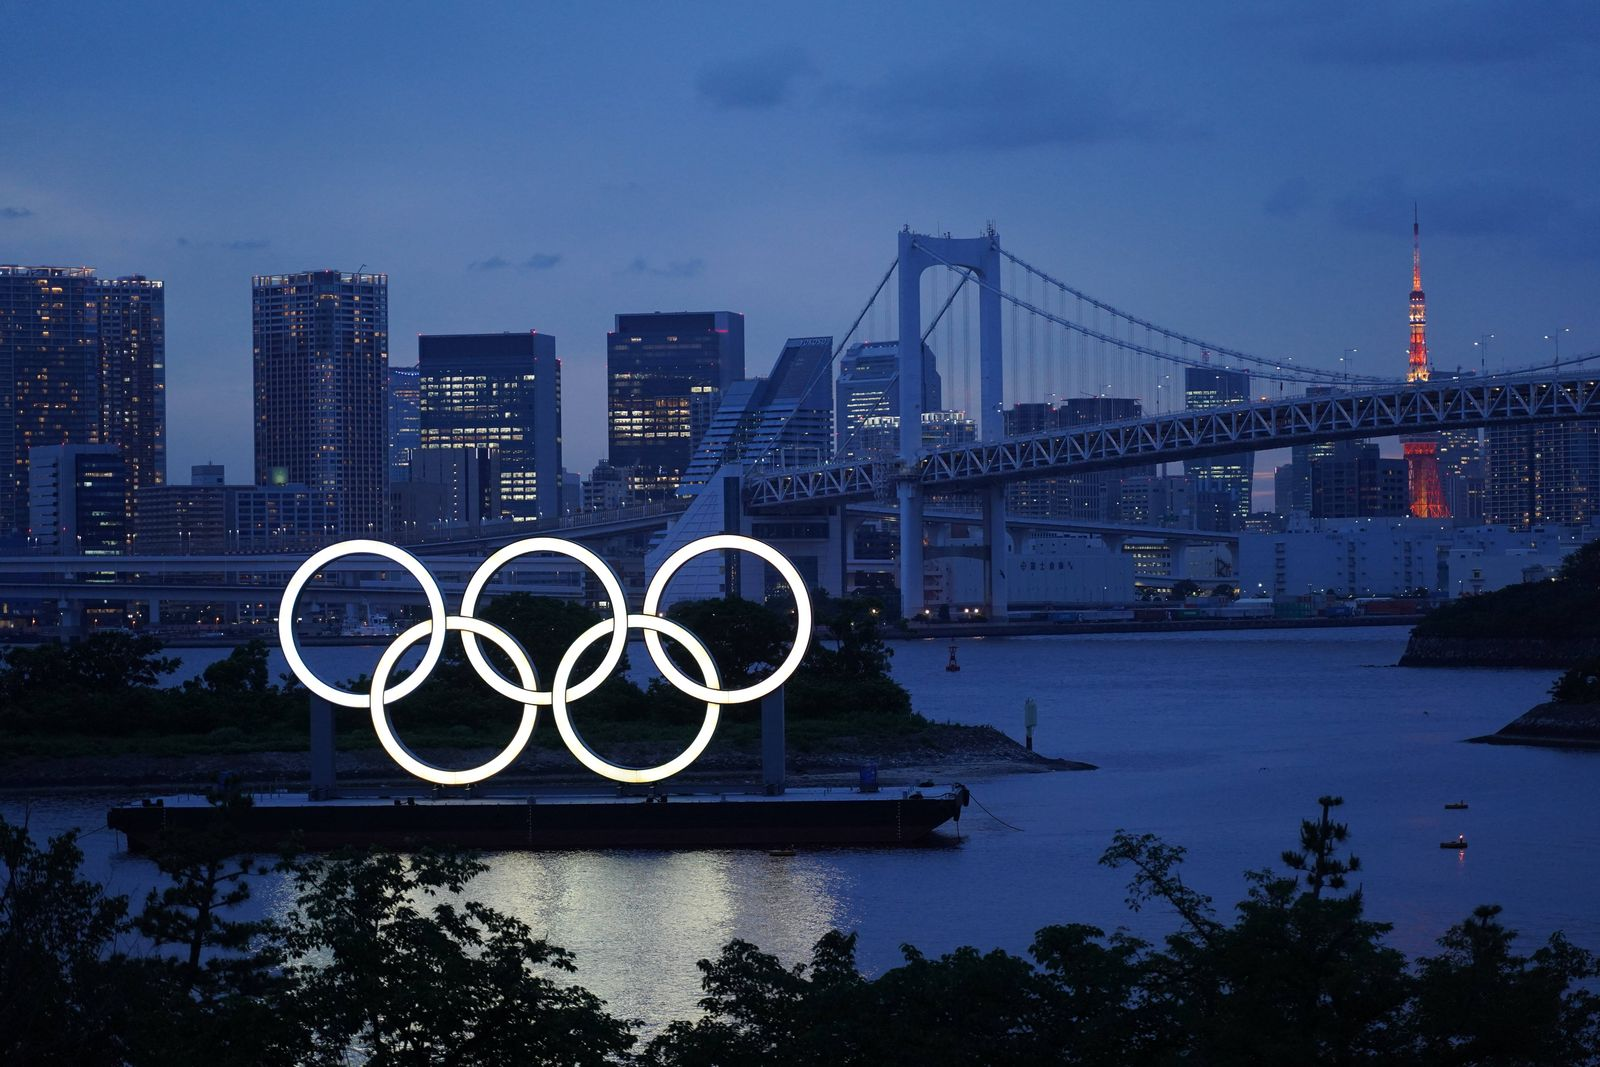 50 Days To Go For Tokyo Olympics Game The Olympic Rings displayed by the Odaiba Marine Park light up on the day marking